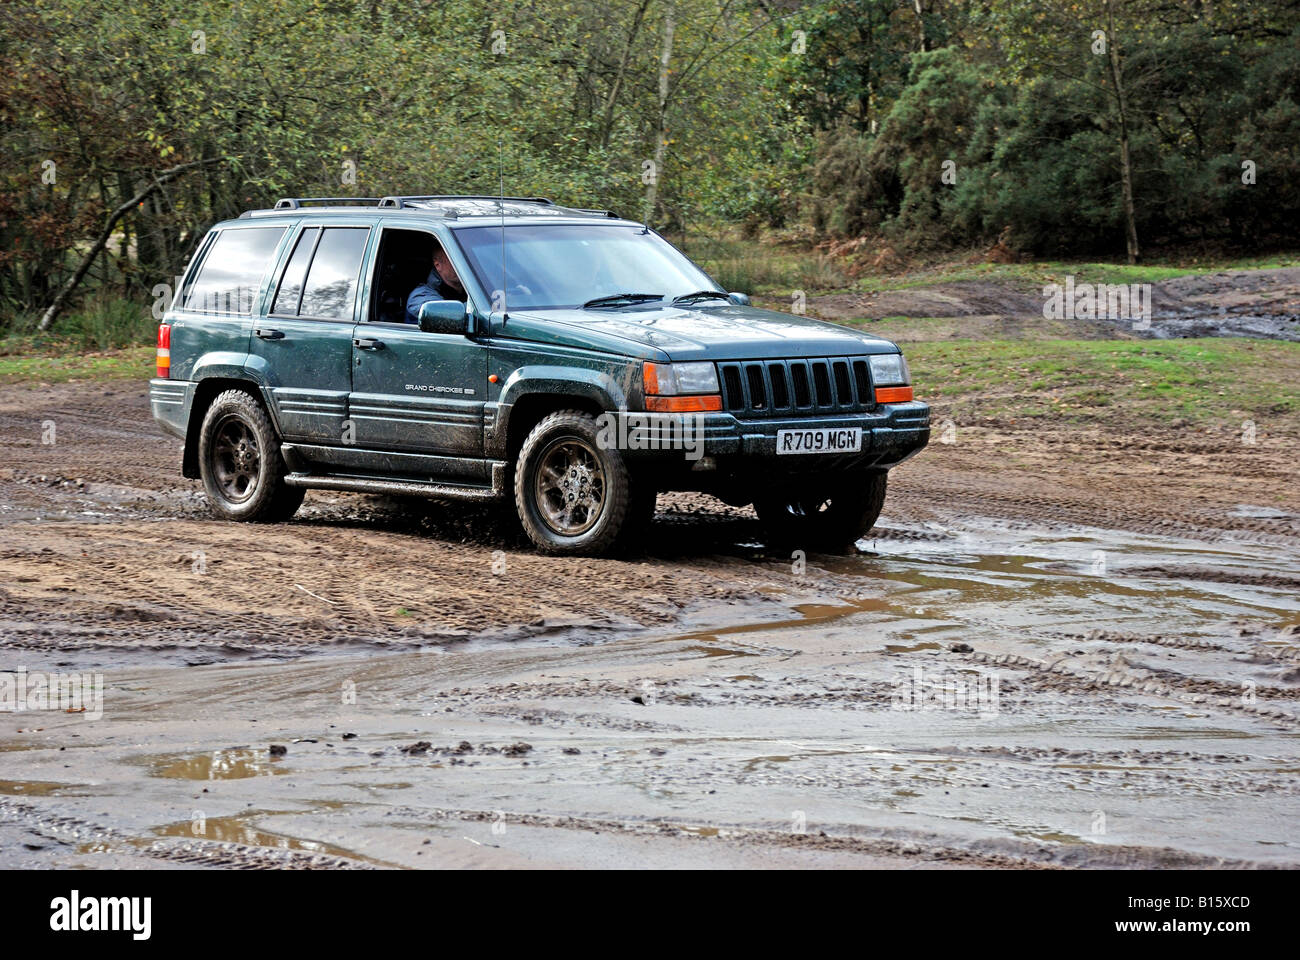 chrysler jeep grand cherokee 4wd at a broxhead common bordon drive